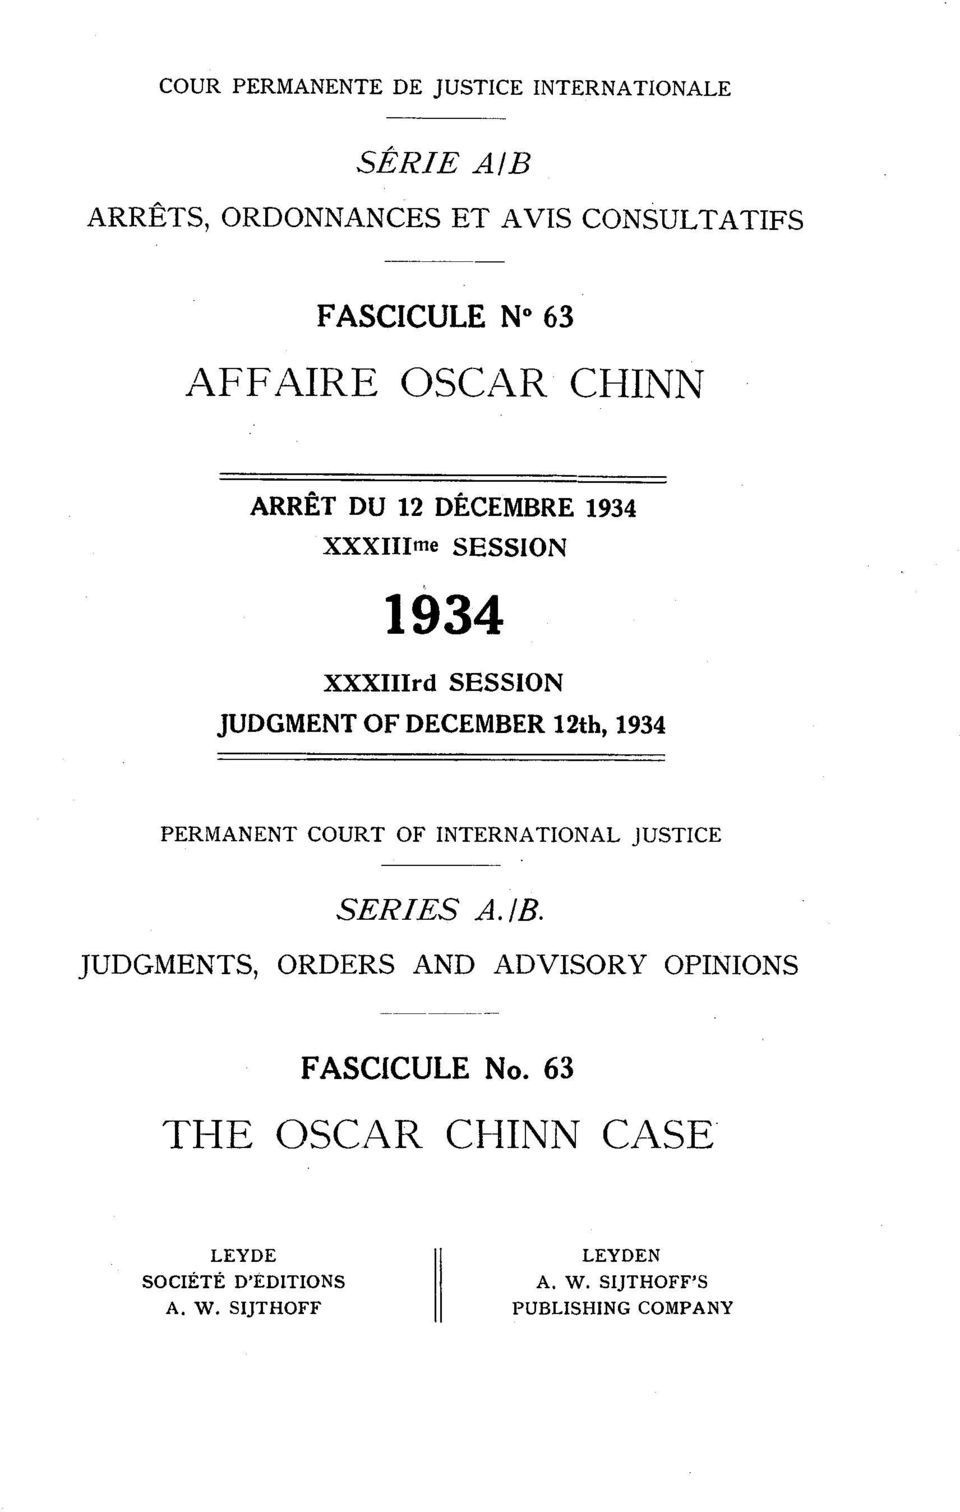 12th, 1934 PERMANENT COURT OF INTERNATIONAL JUSTICE JUDGMENTS, ORDERS AND ADVISORY OPINIONS FASCICULE No.